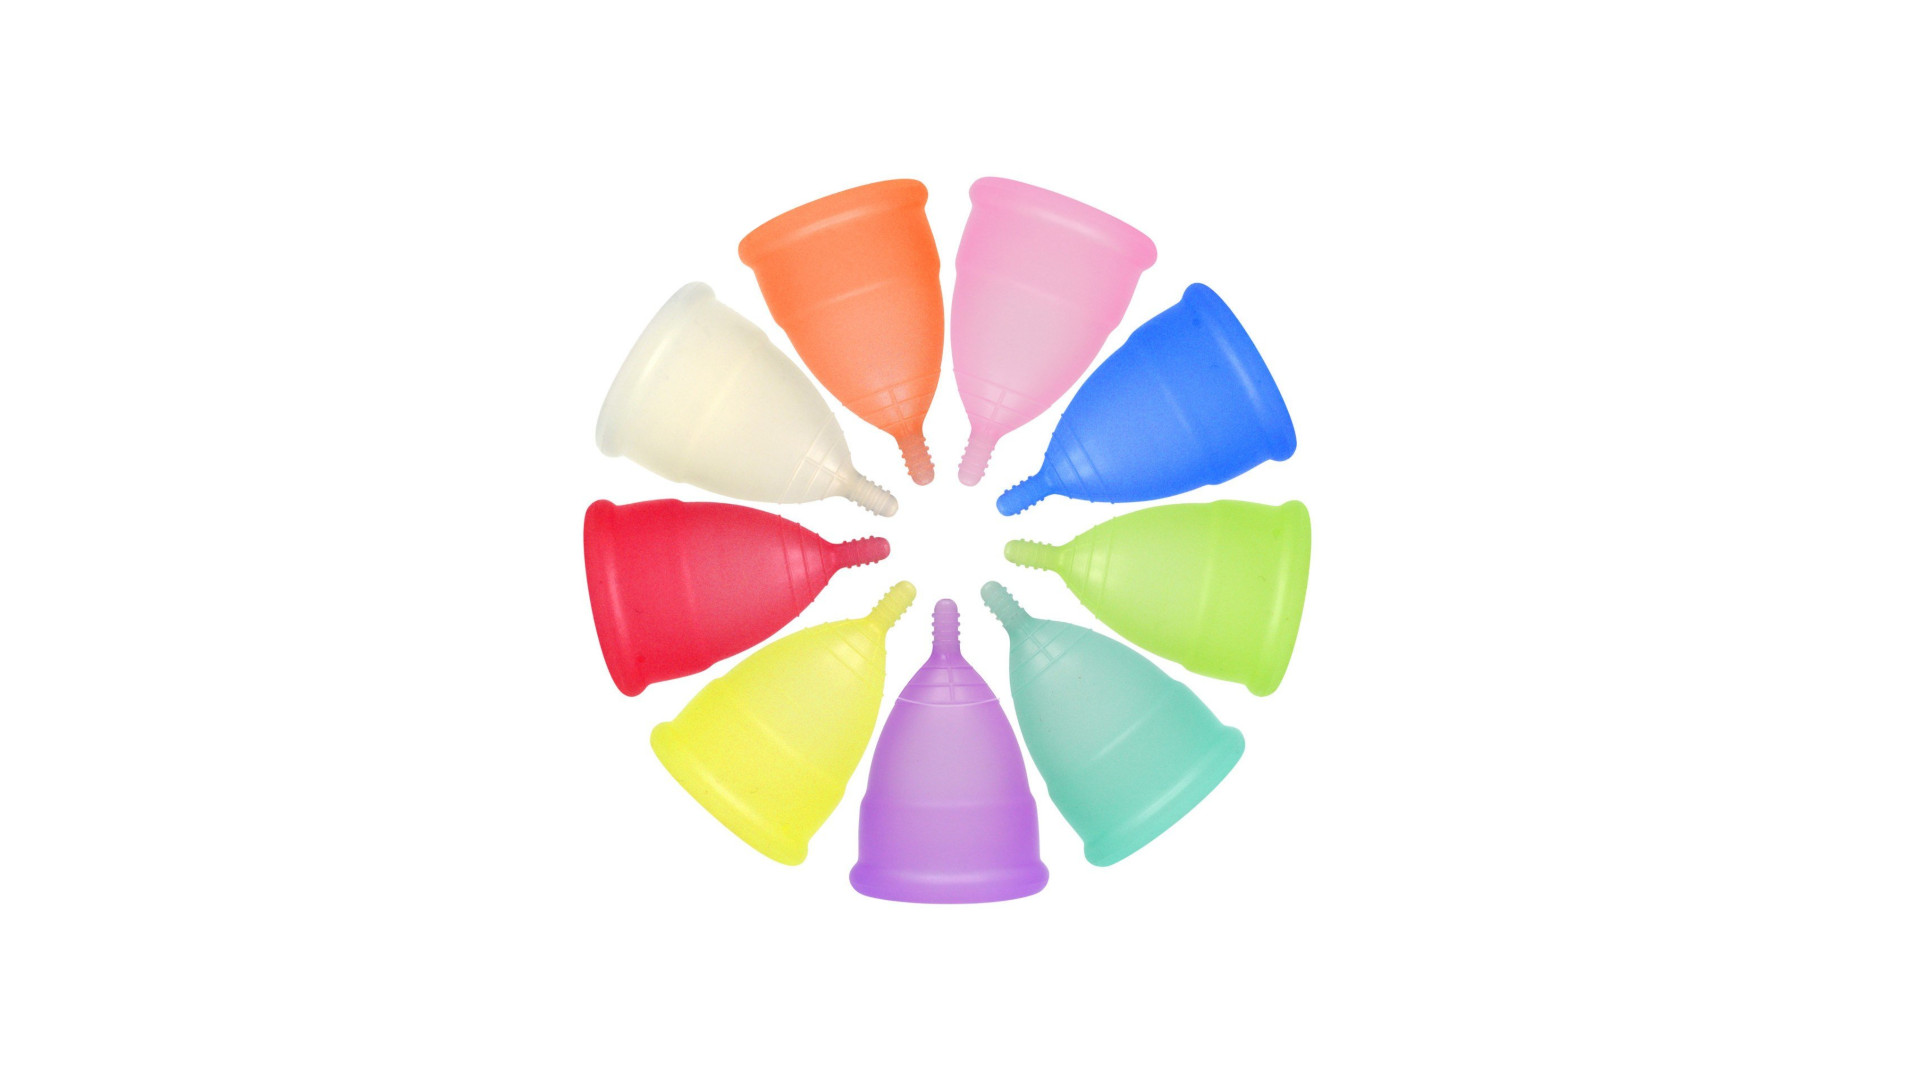 Menstrual cup colors